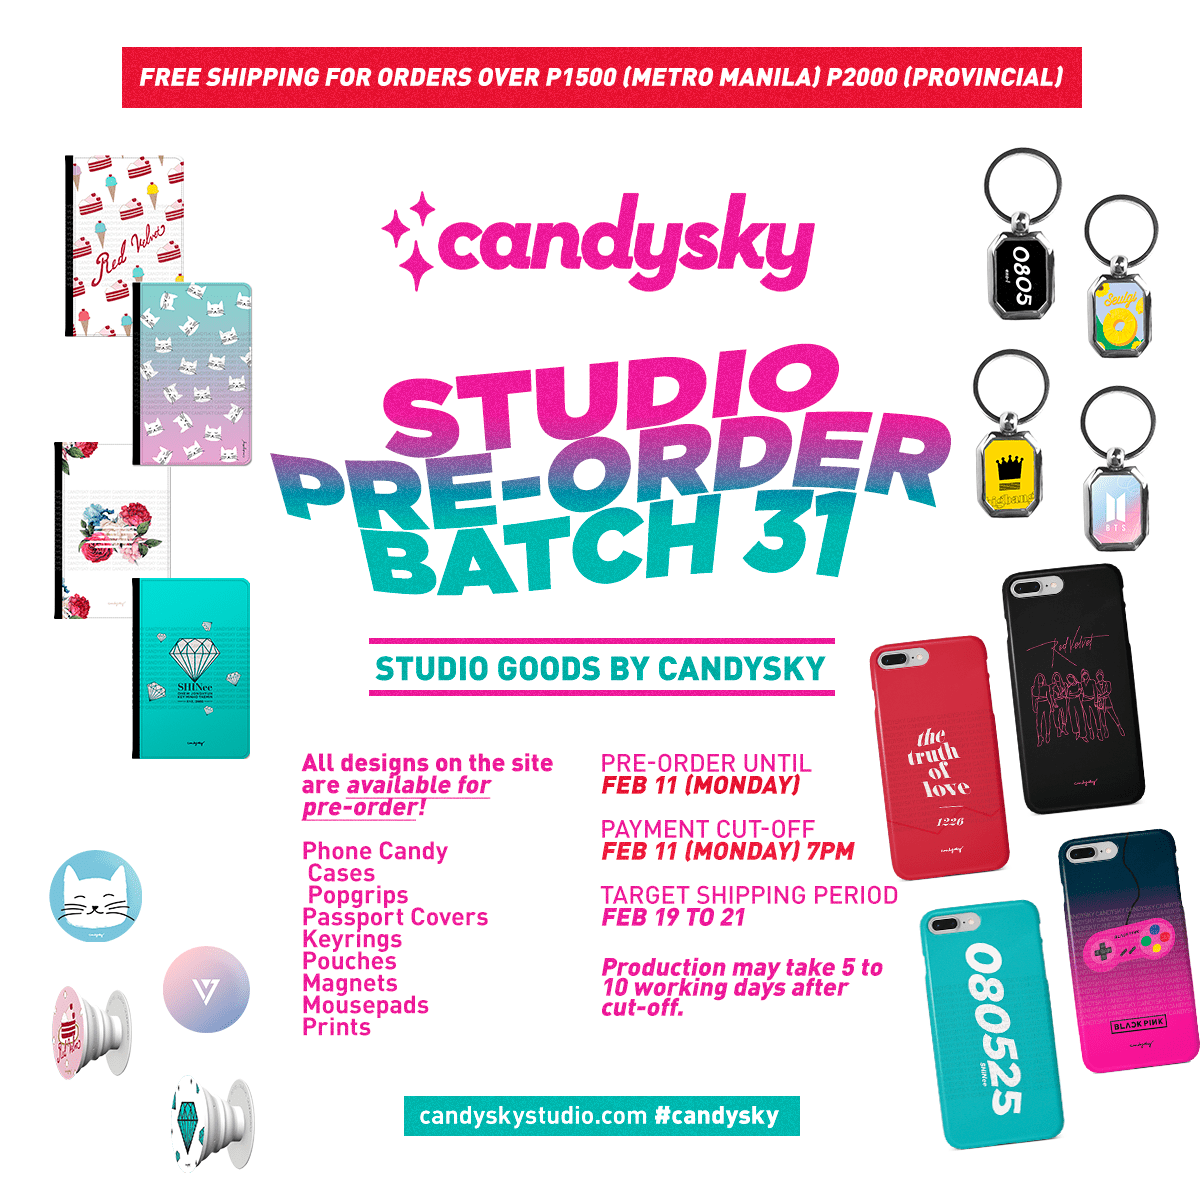 [NOTICE: OPEN] Studio Pre-order Batch 31 + FREE SHIPPING PROMO!